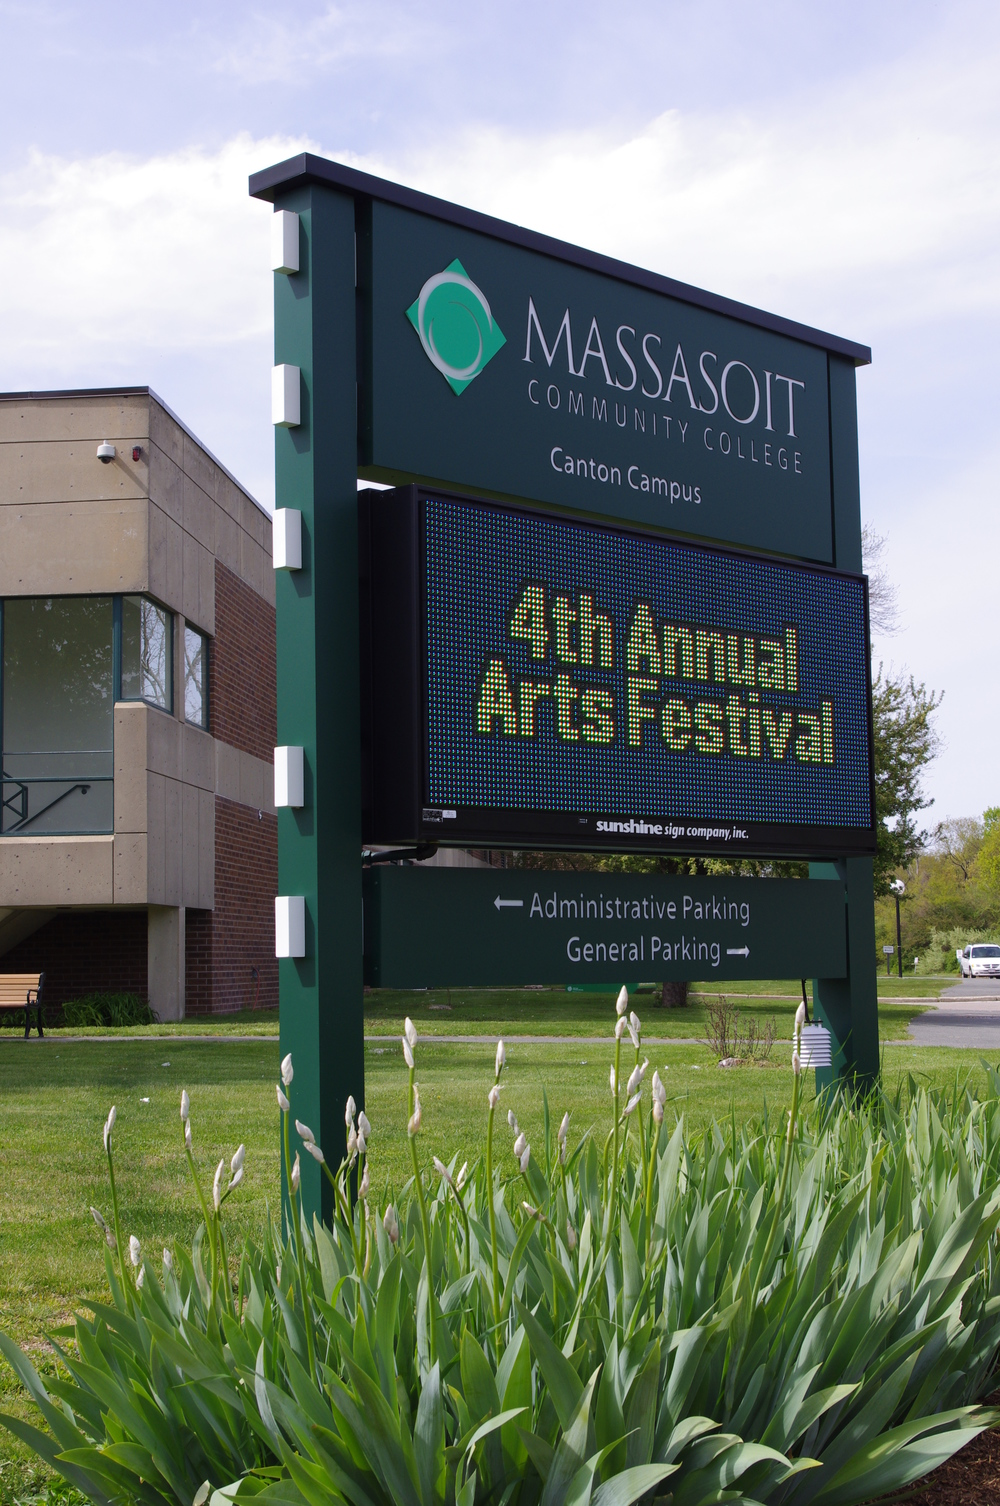 MASSASOIT_4_WEBSITE.JPG